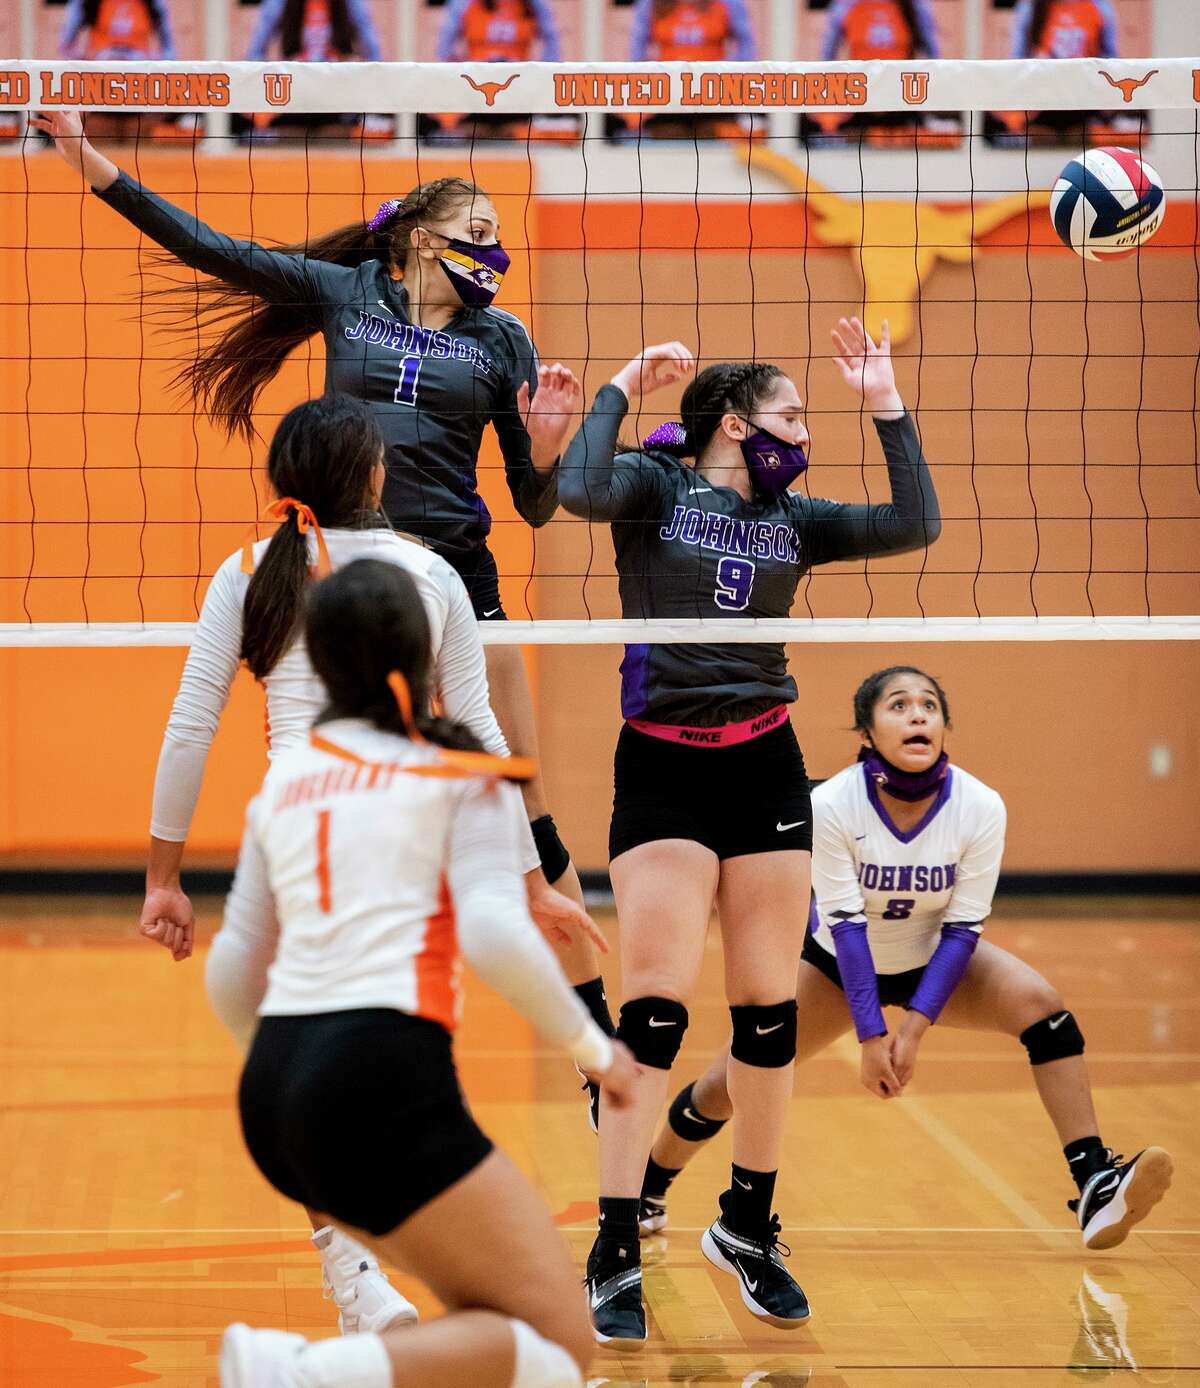 LBJ hosts Martin and CC Winn in a tri-match Tuesday to open the season while United hits the road to take on Nikki Rowe.